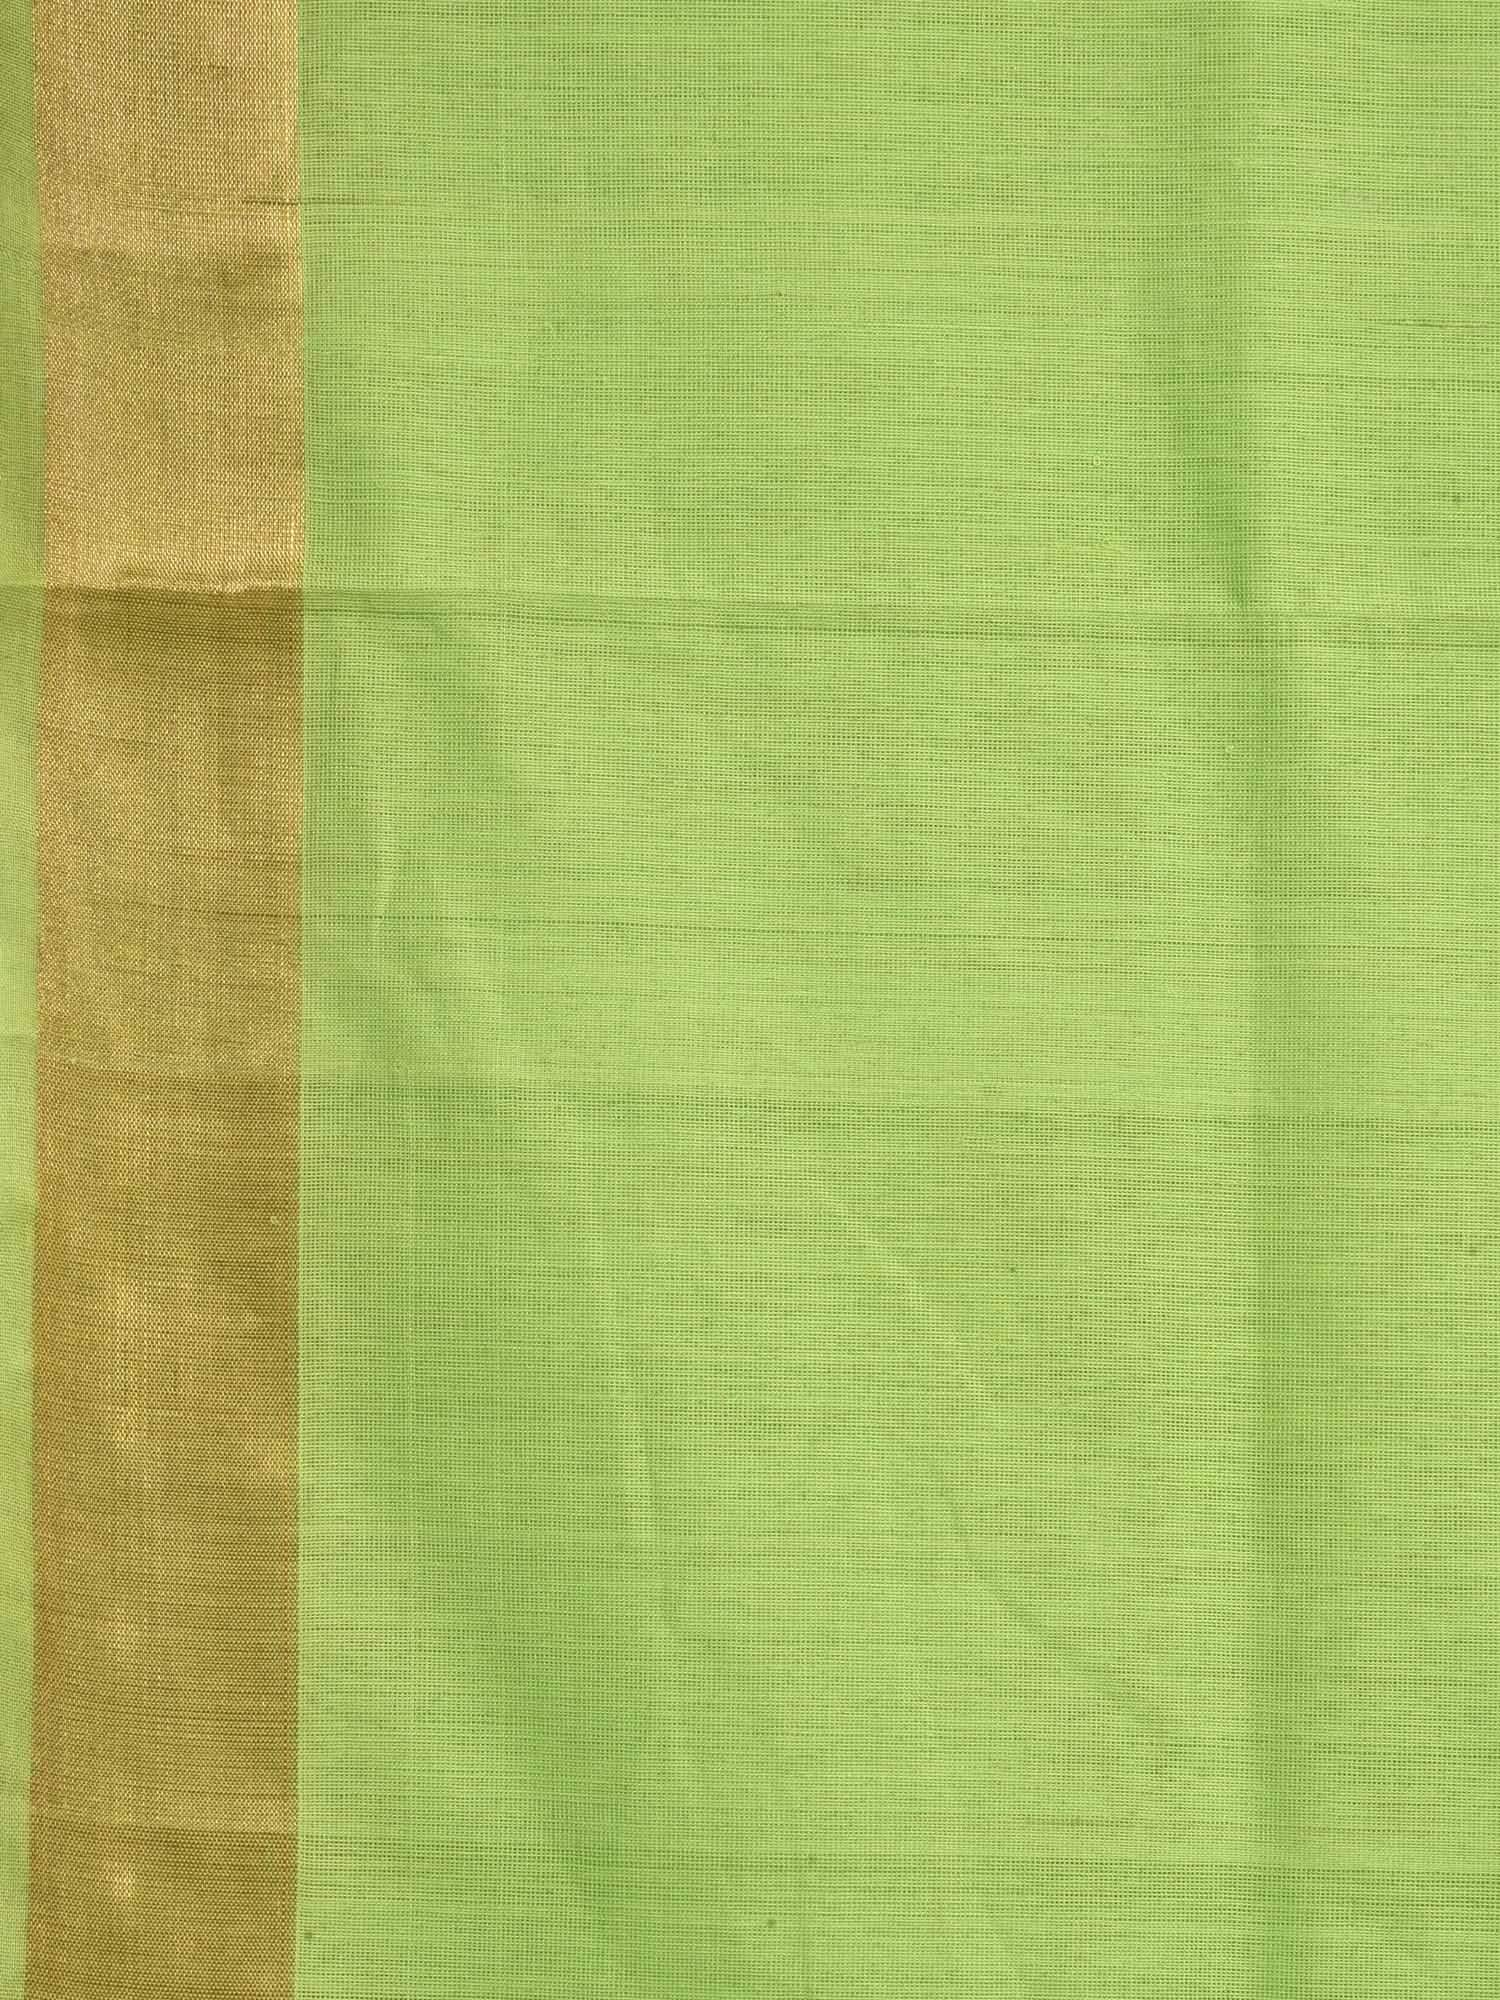 Light Green Khadi Cotton Handloom Saree with Assorted Buta Pallu Design kh0382